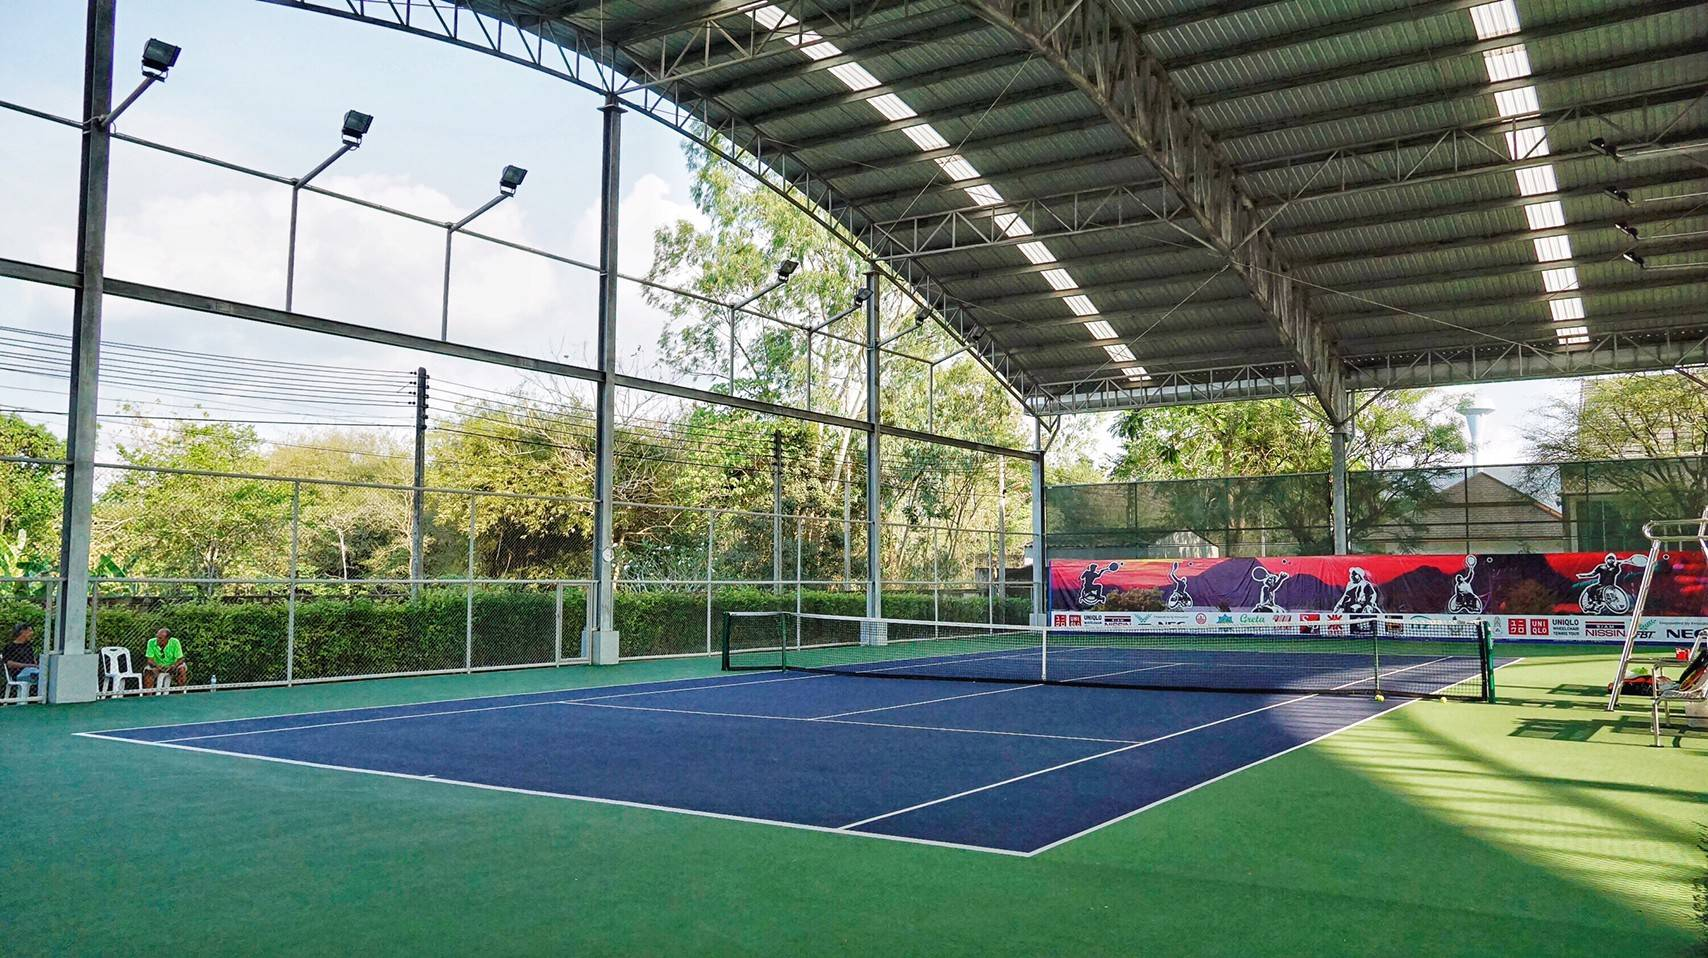 /LUXURIOUS TRAINING FACILITIES